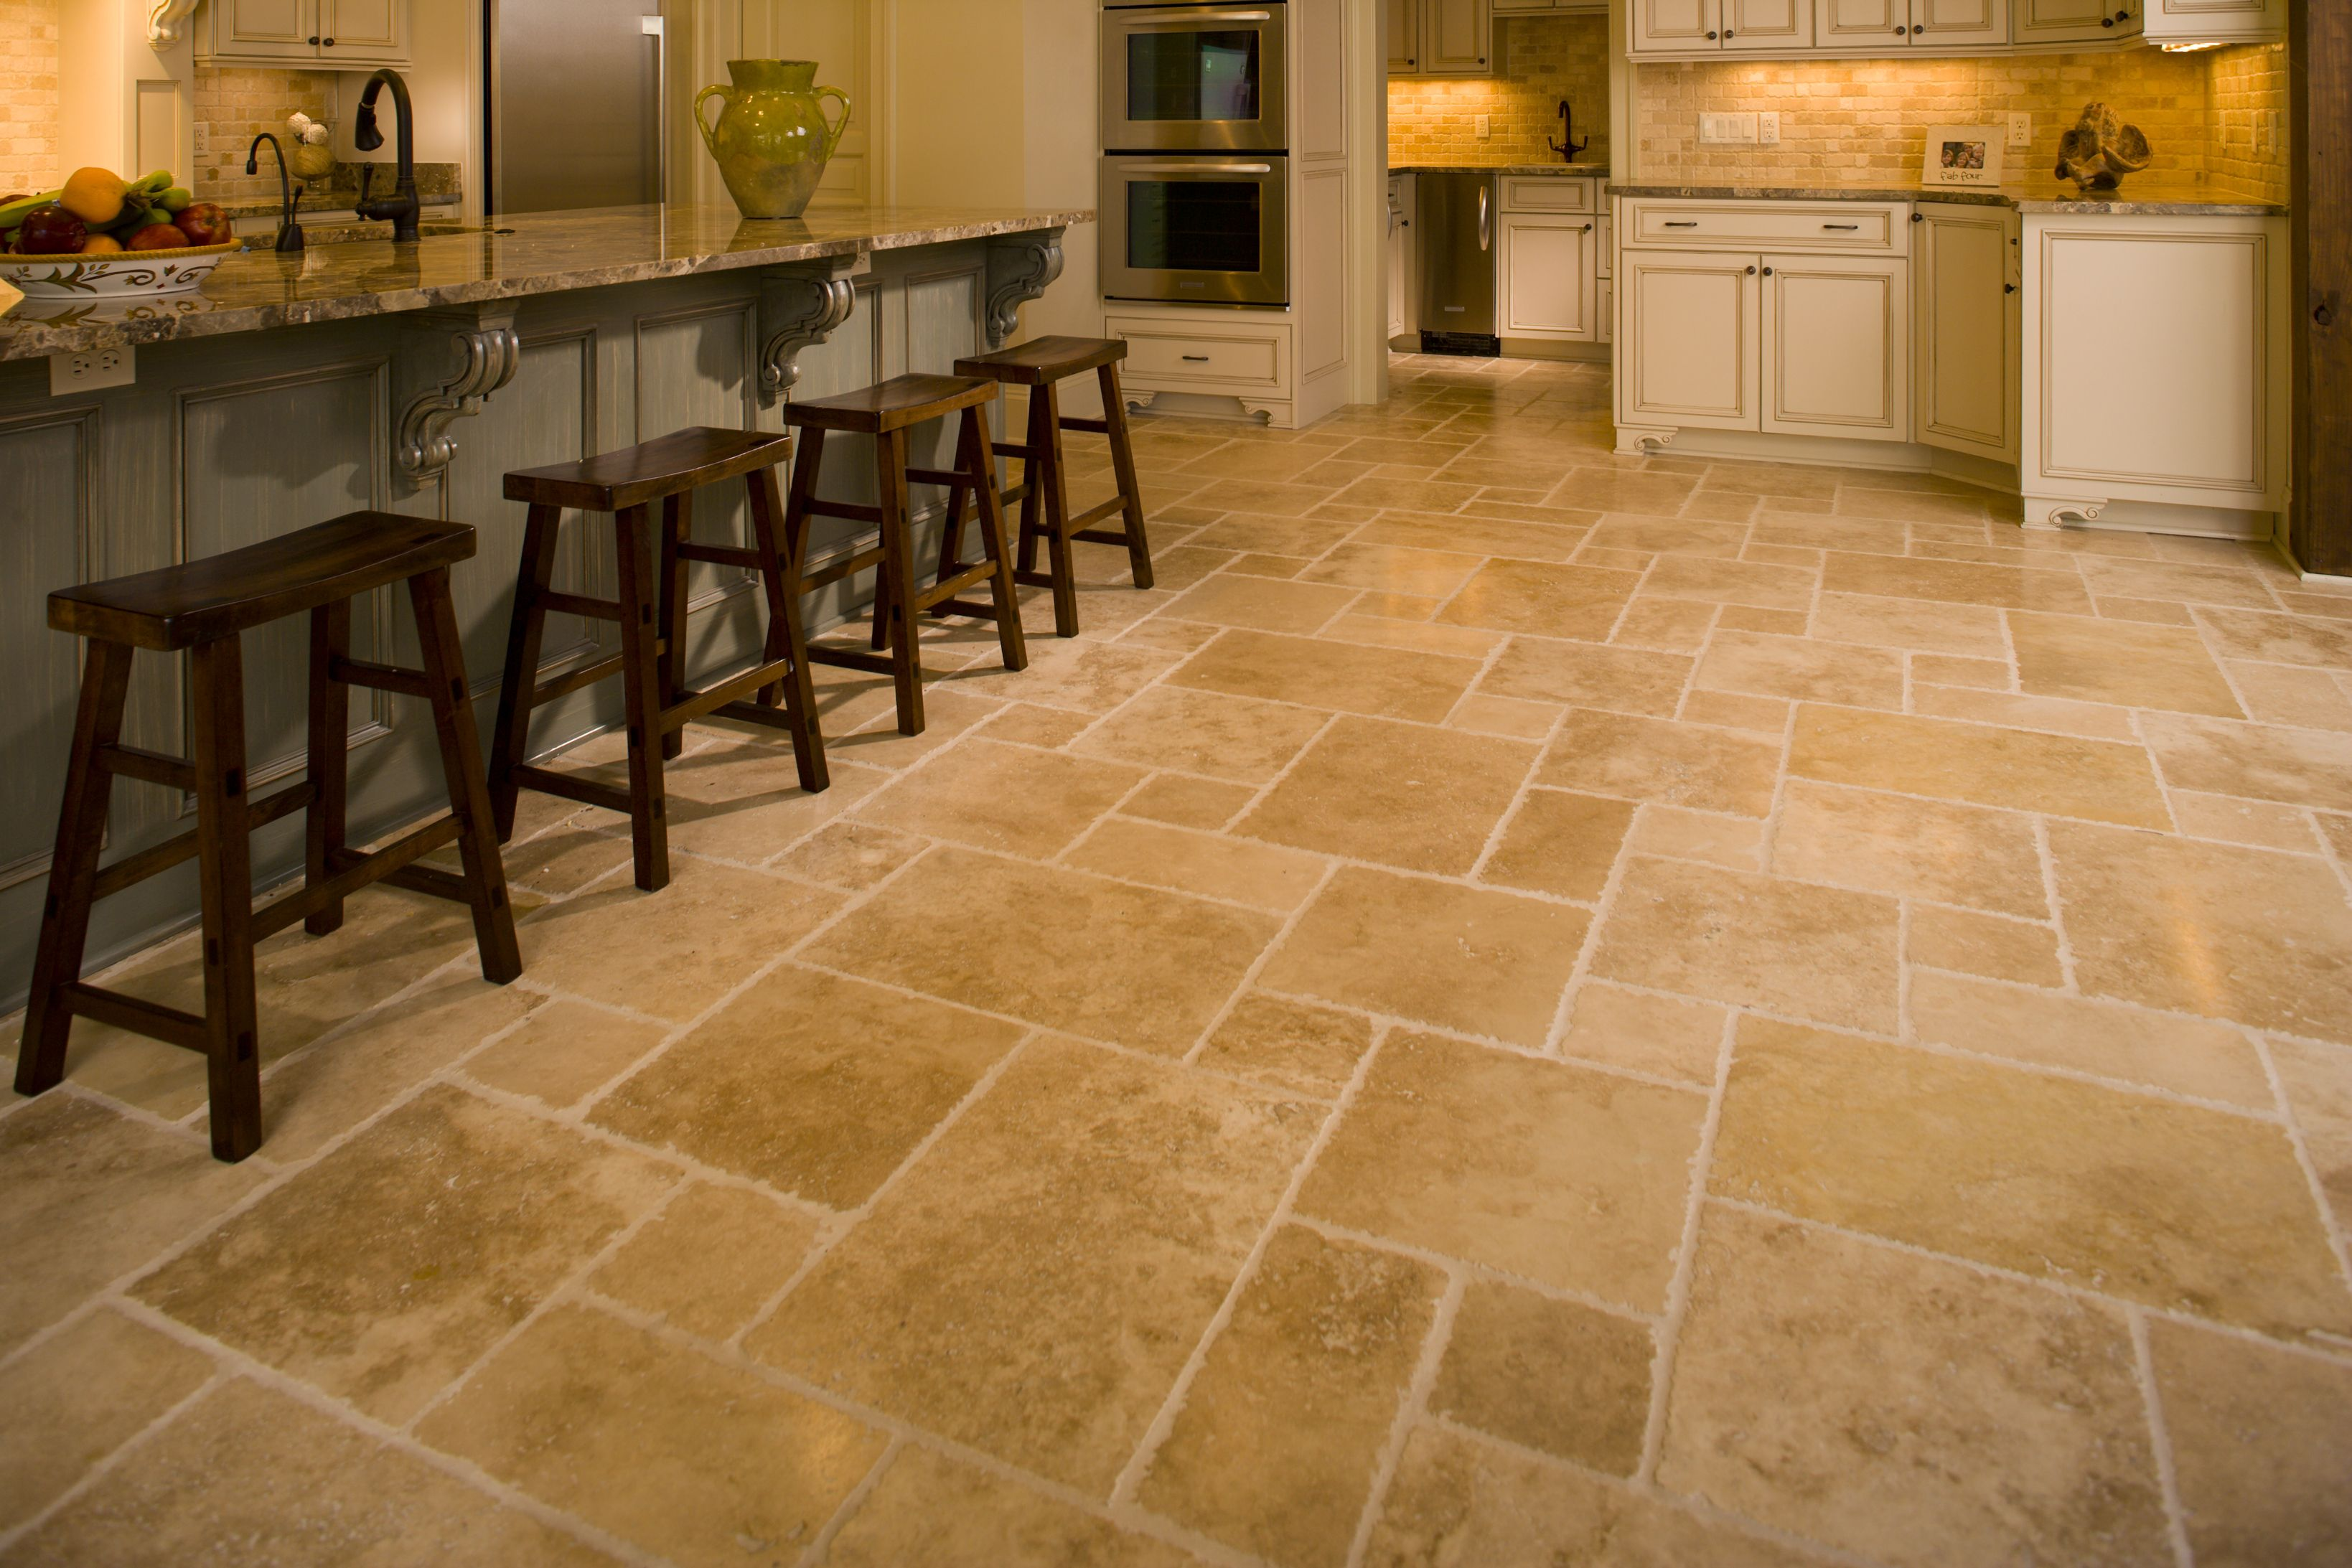 Versailles pattern chiesled edge travertine ~ Palatial Stone ...